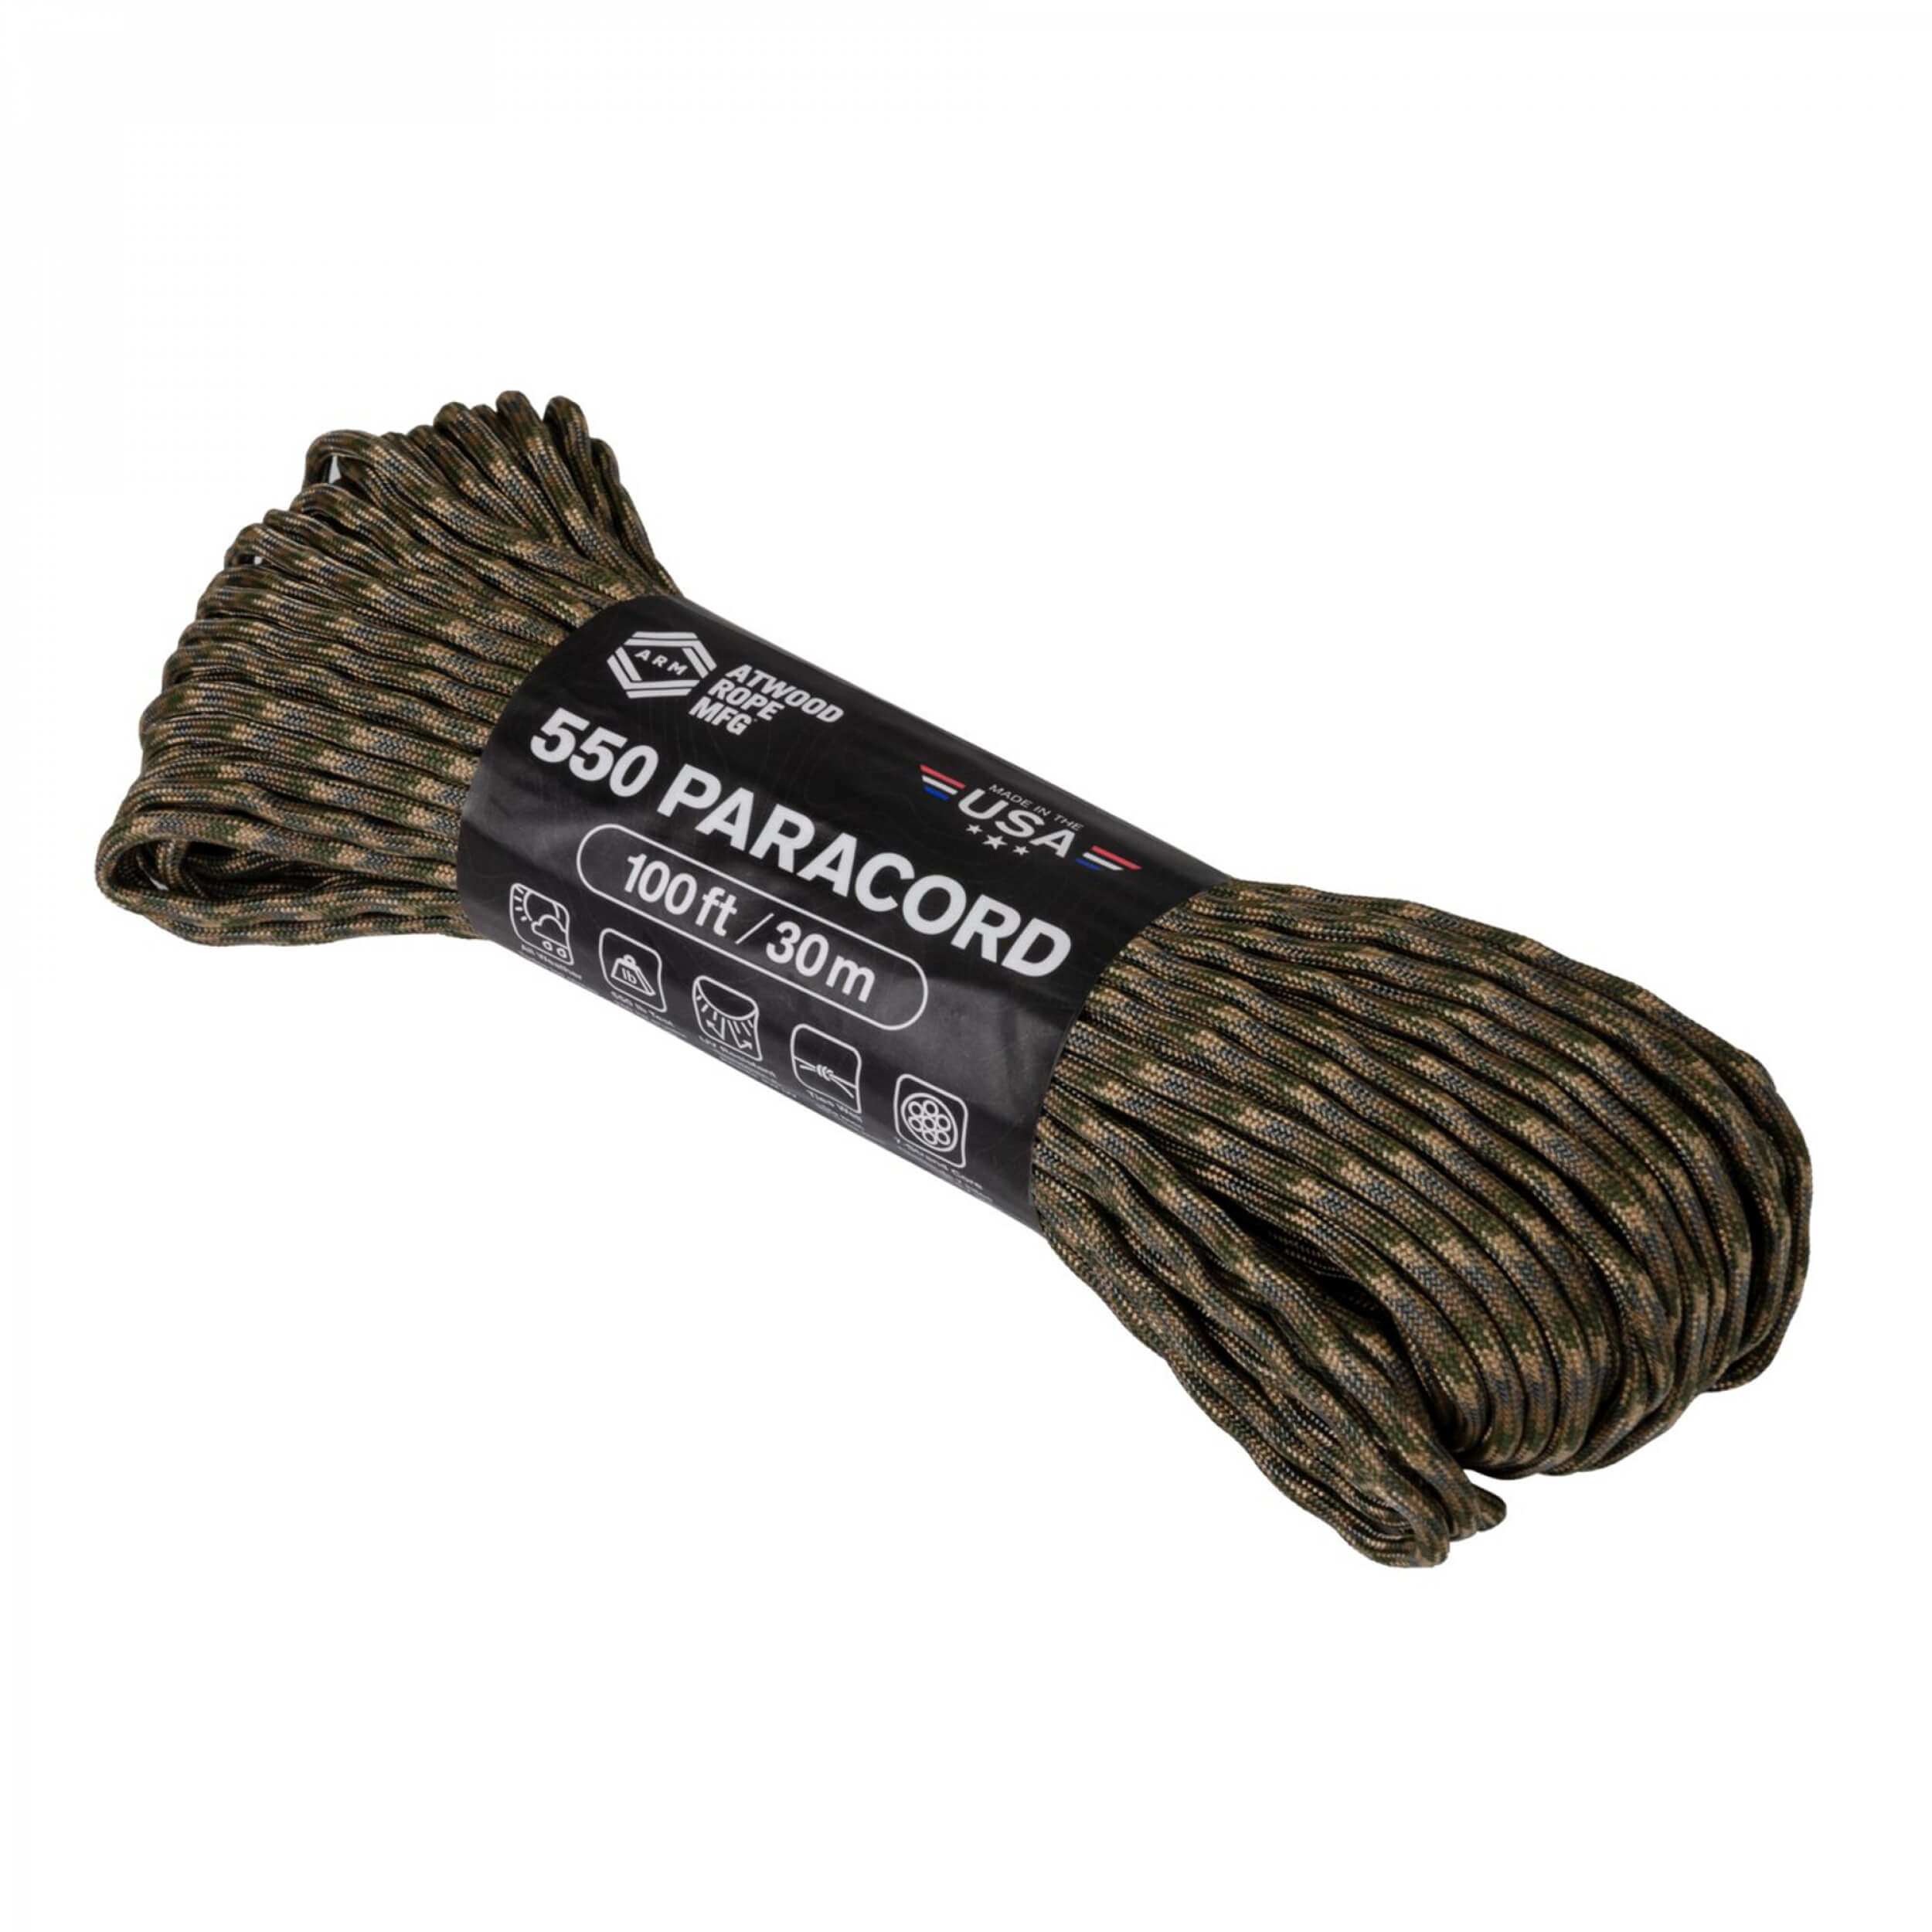 Helikon-Tex 550 Paracord (110FT) multicam